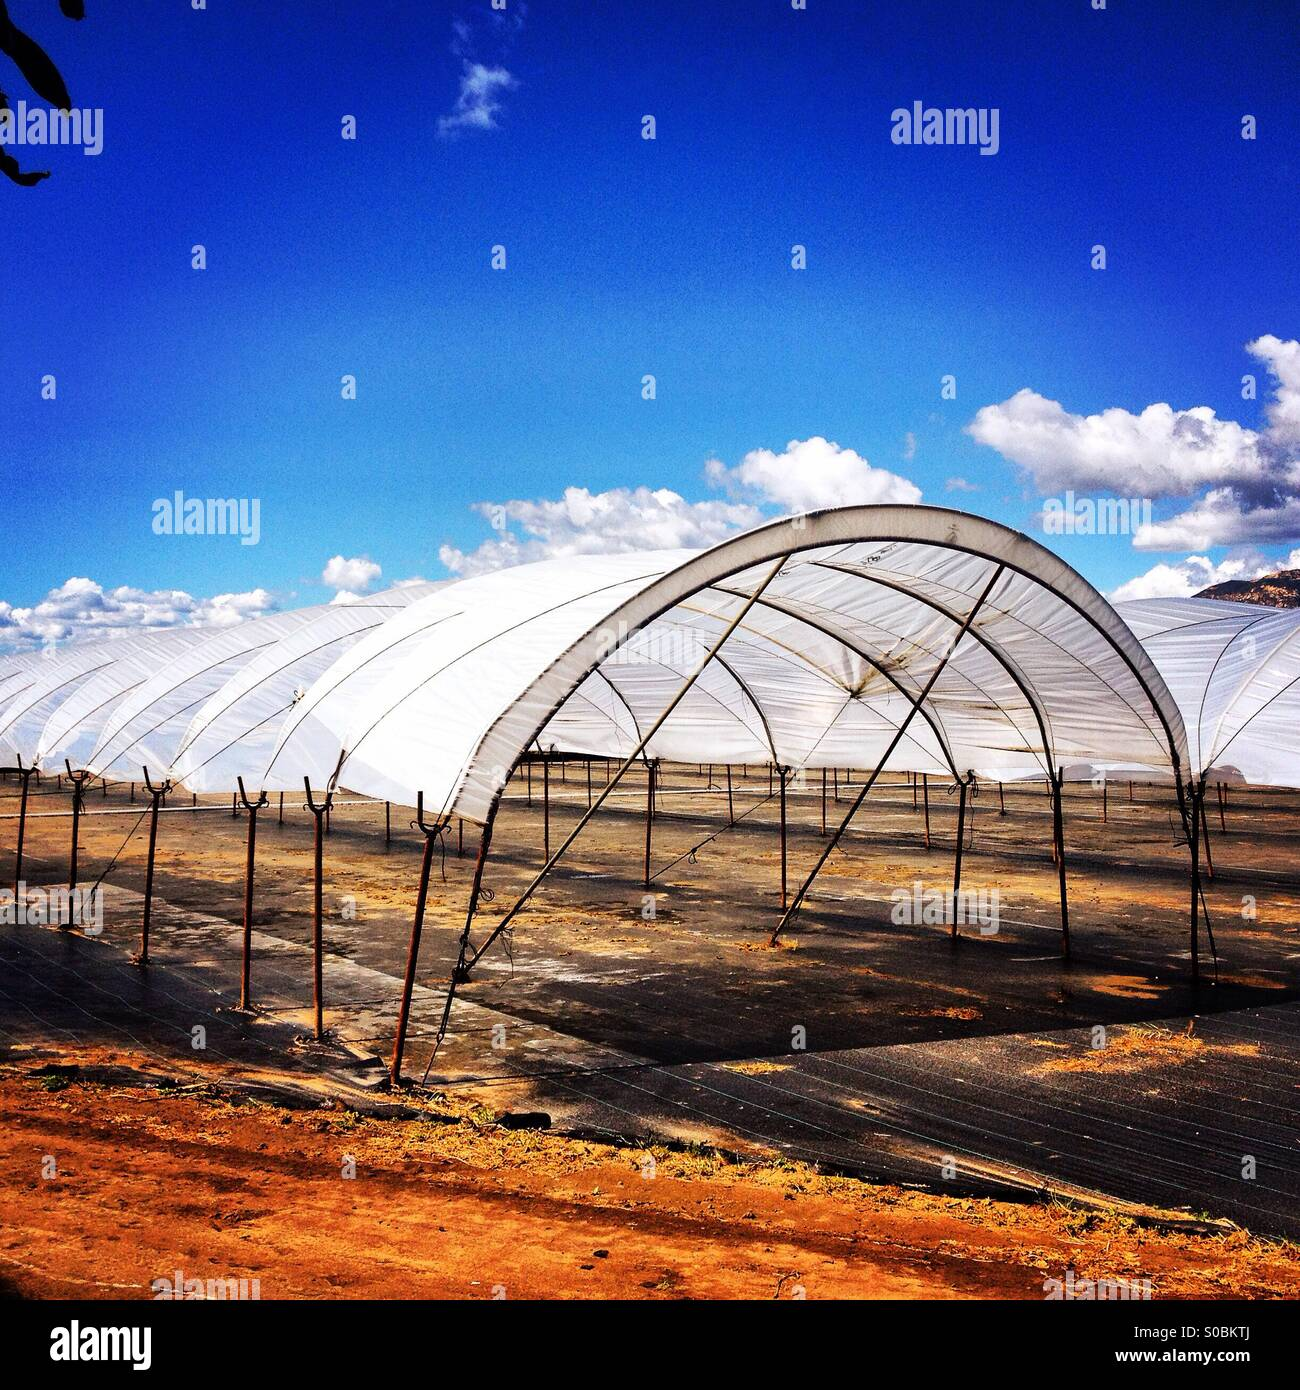 Farm field clear plastic coverings Stock Photo